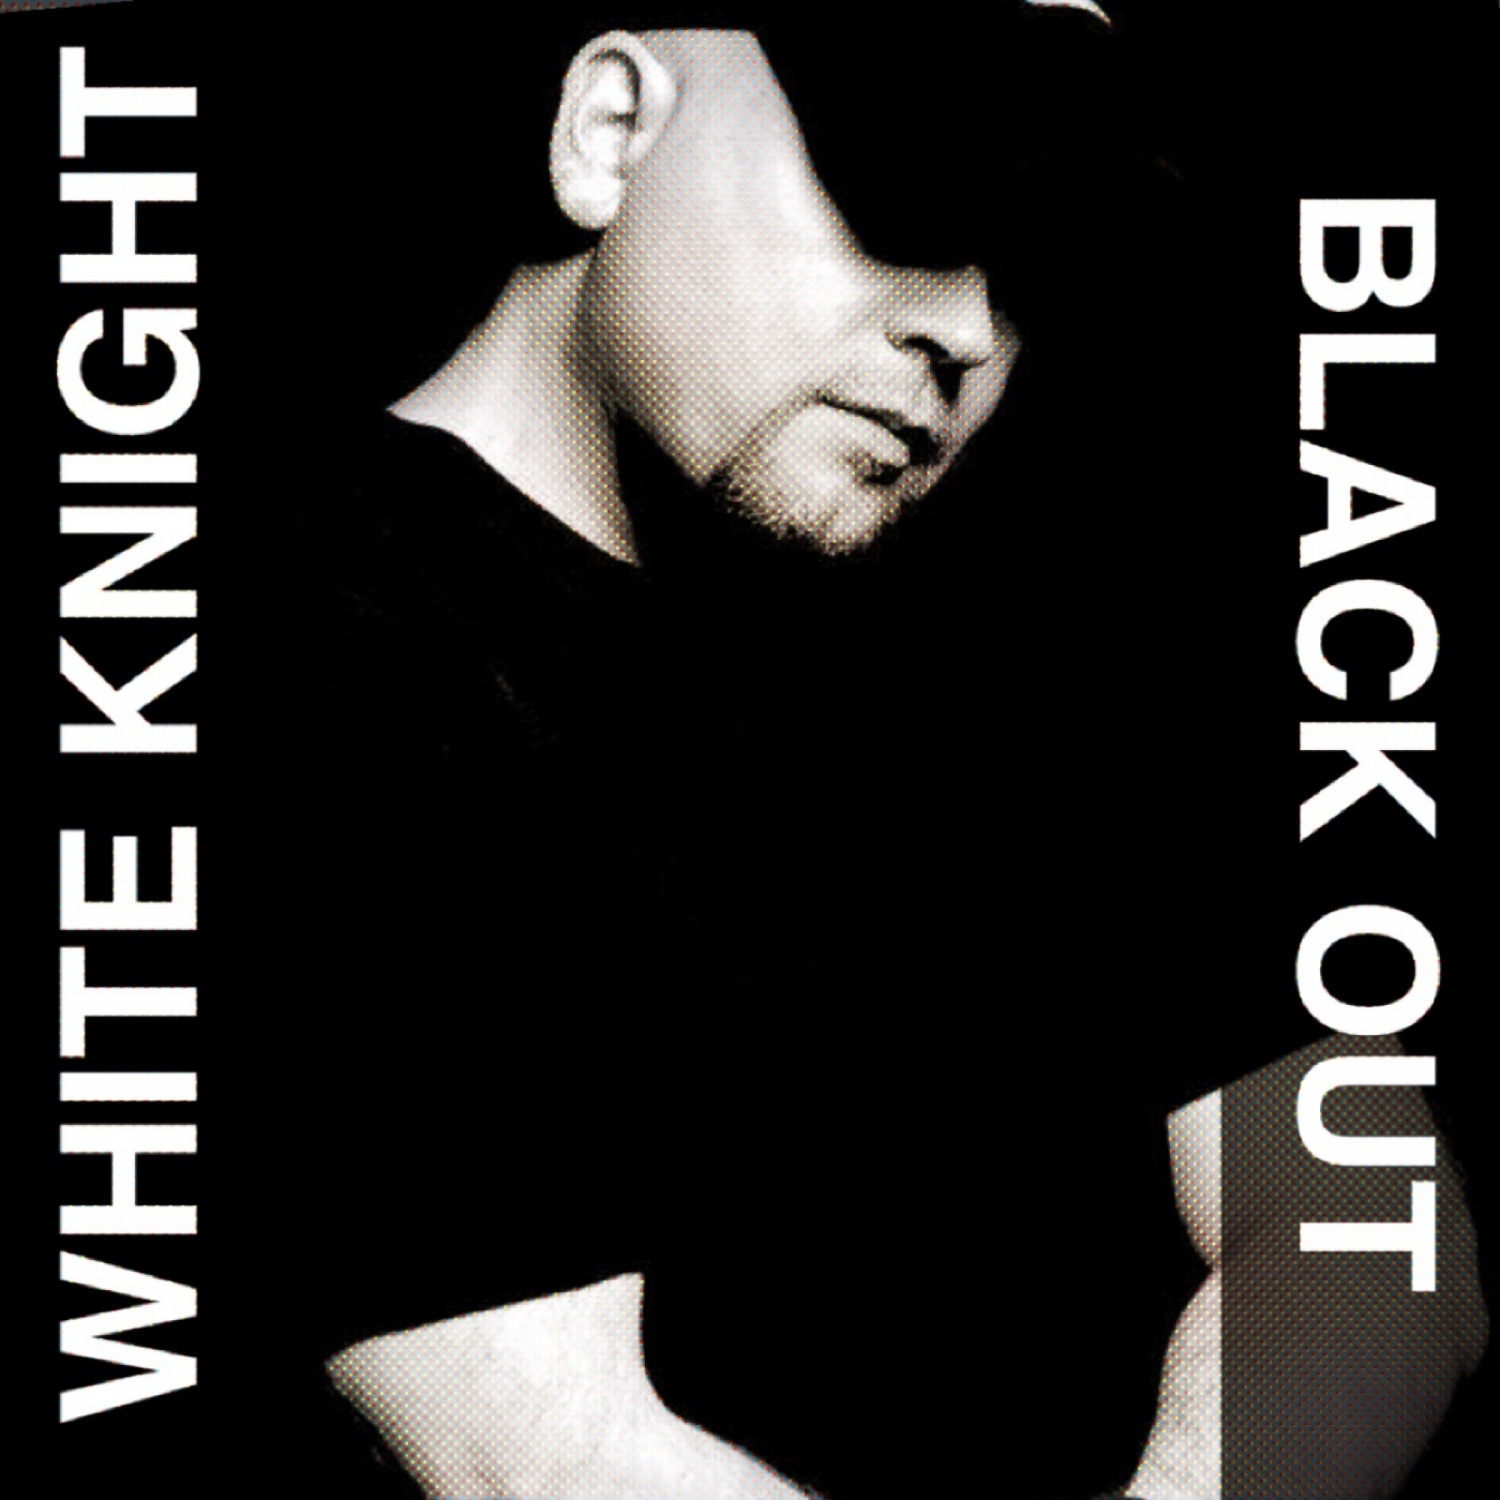 White Knight - Black Out (White Knight\'s Arena Live Mix)